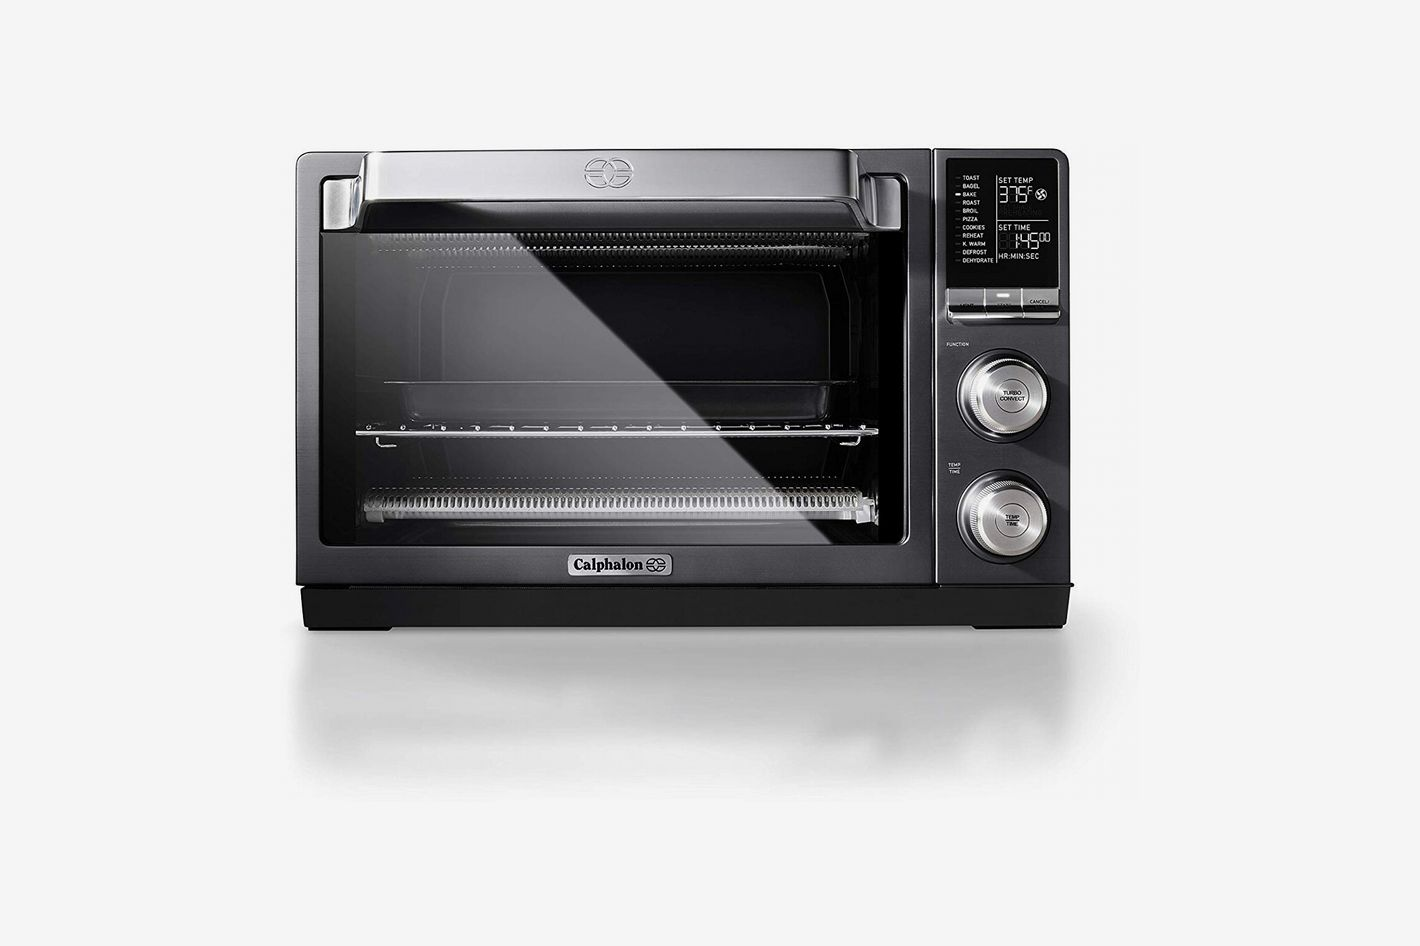 Calphalon Quartz Heat Countertop Toaster Oven, Dark Stainless Steel